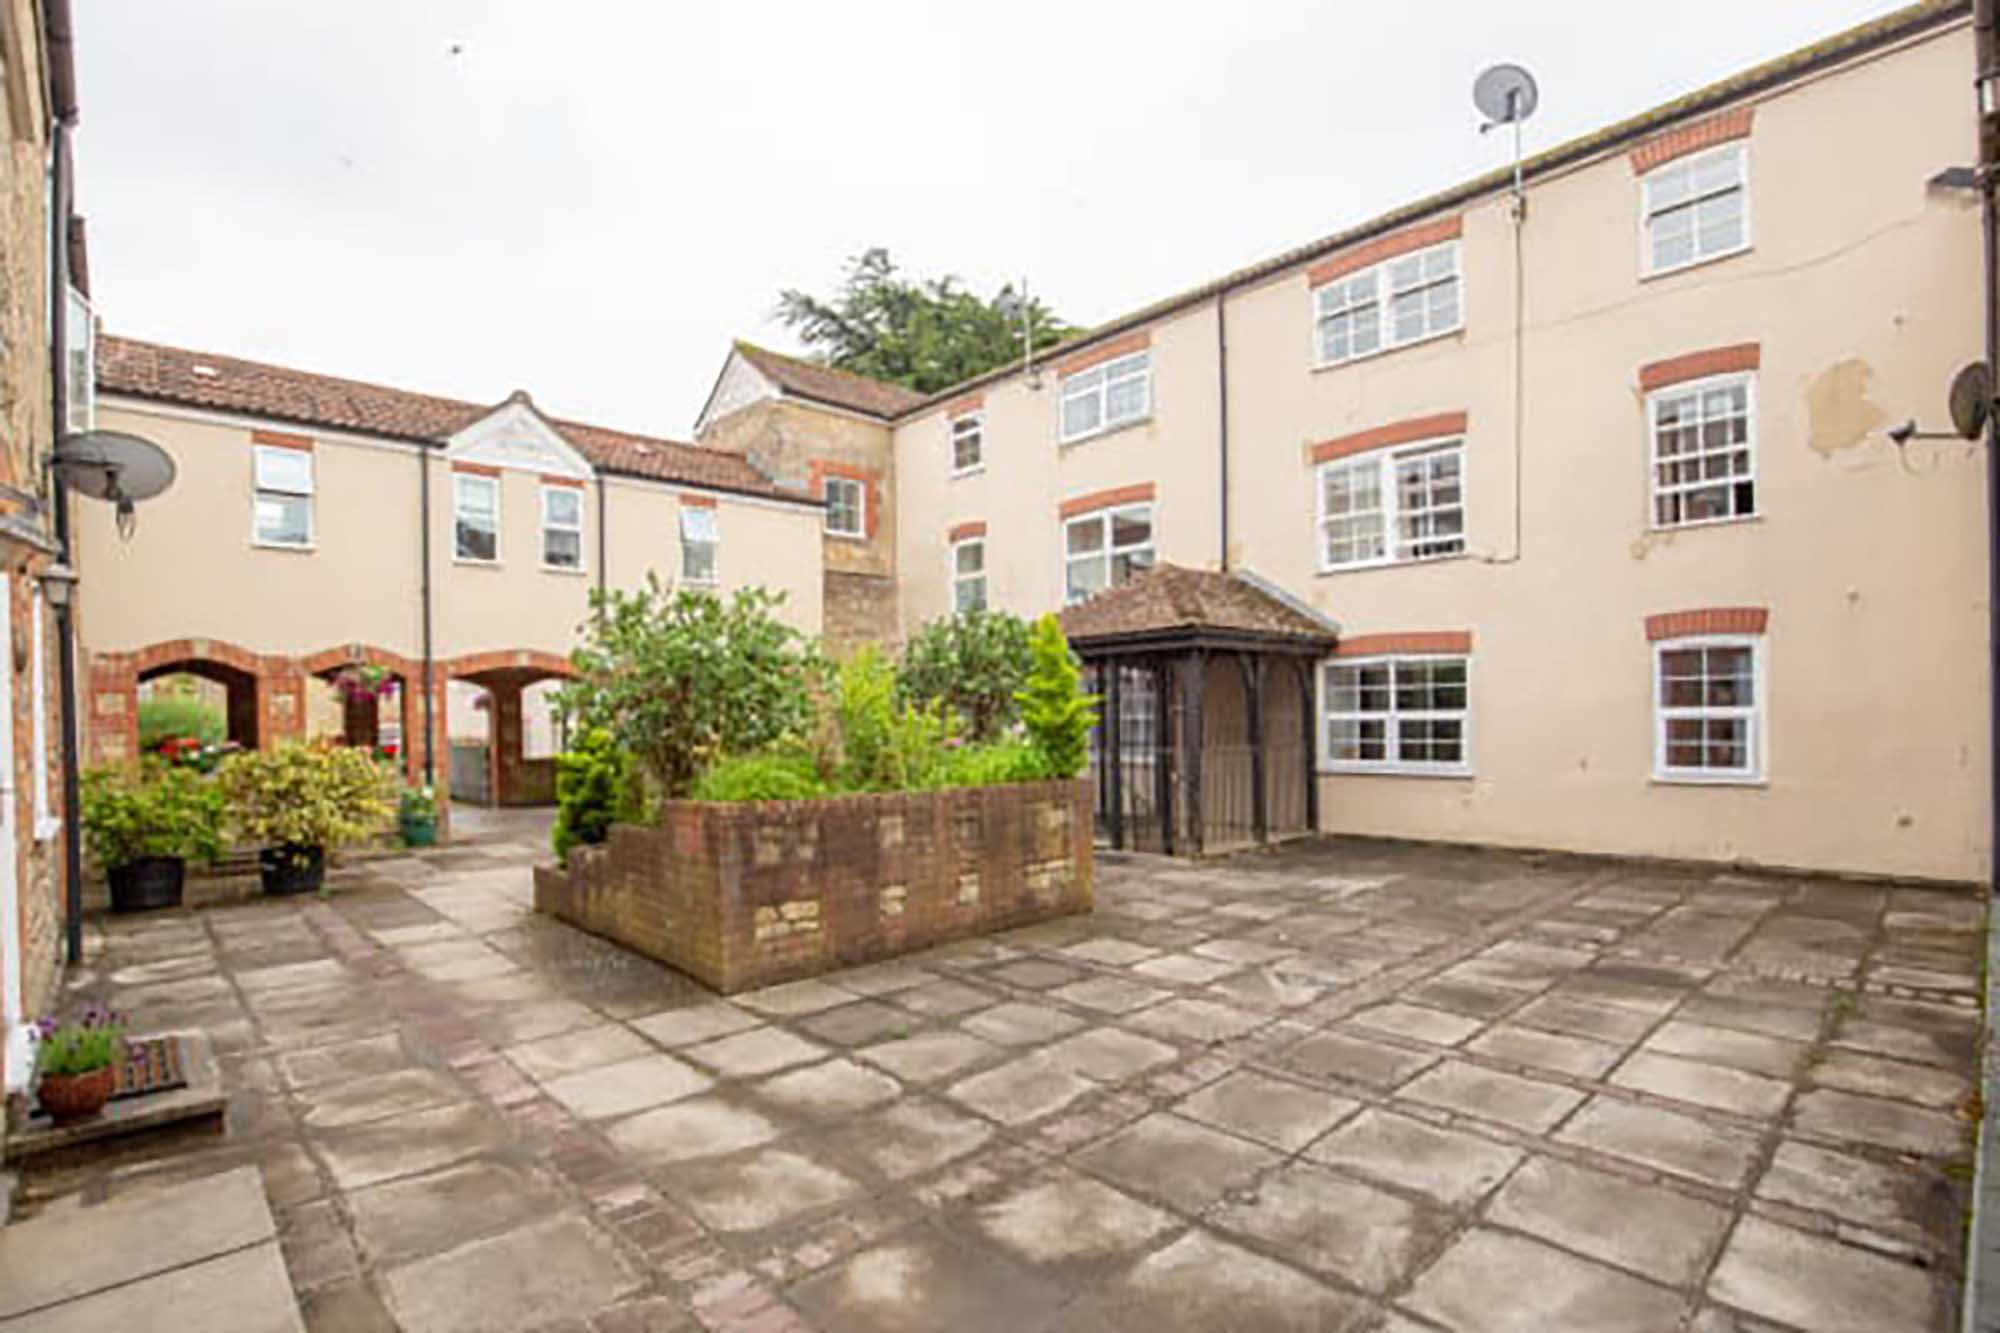 Wonderful apartment in the heart of Bruton